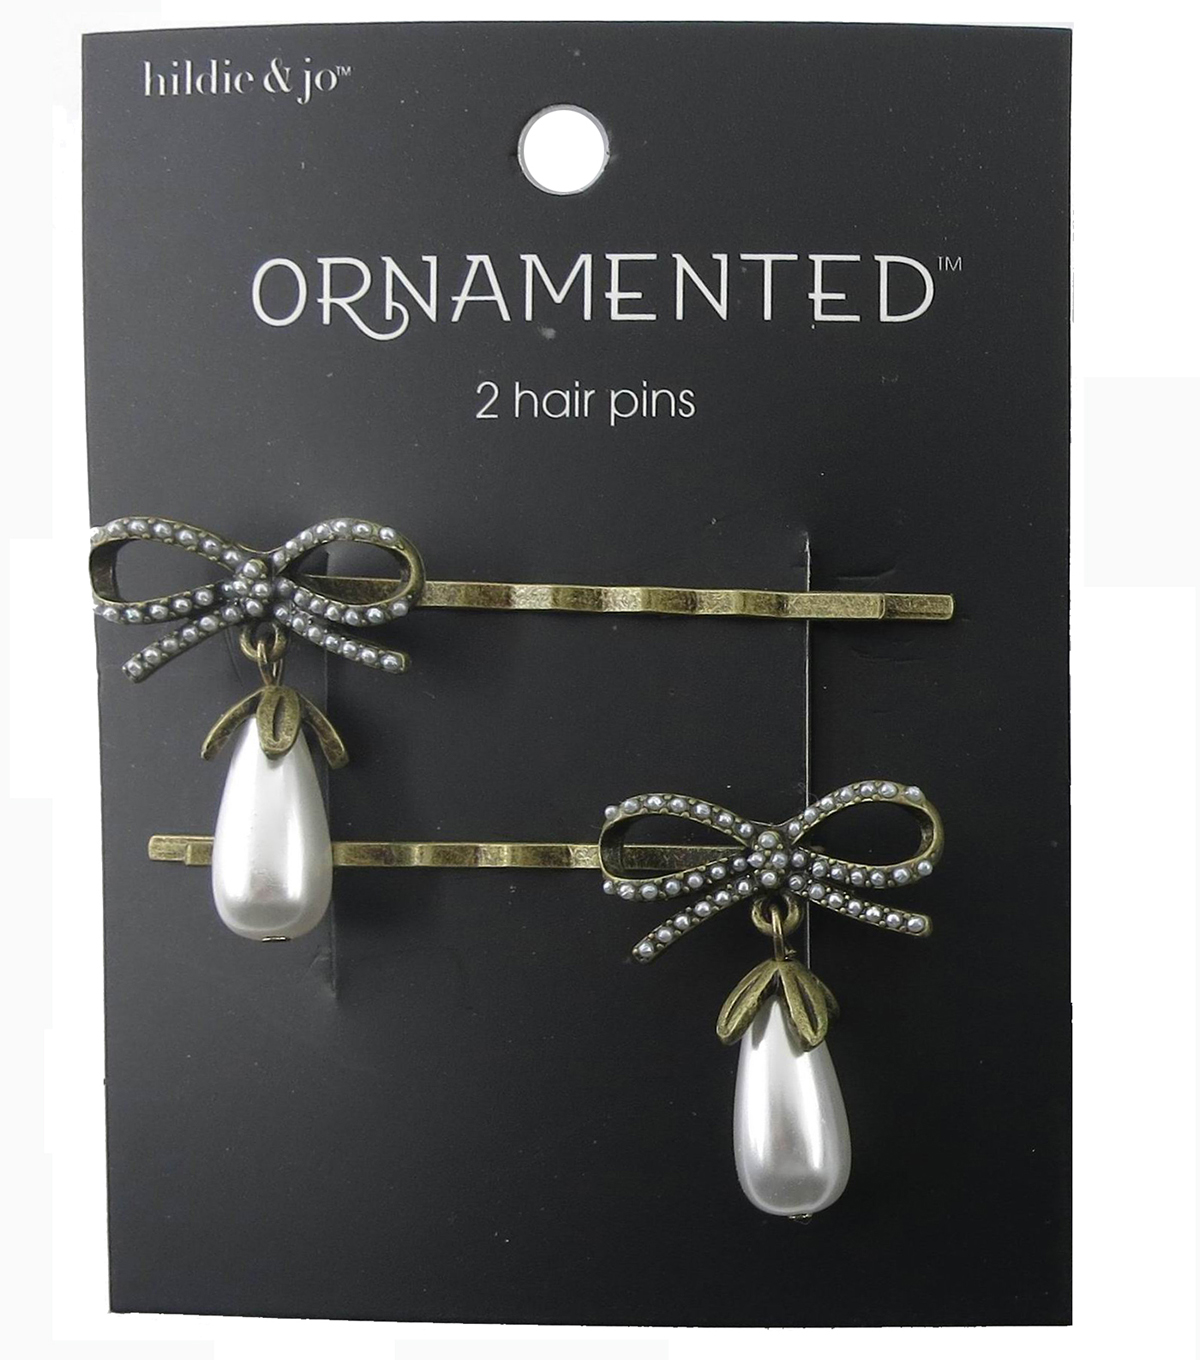 hildie & jo™ Ornamented Bow Antique Gold Hair Pins-Pearl Dangle